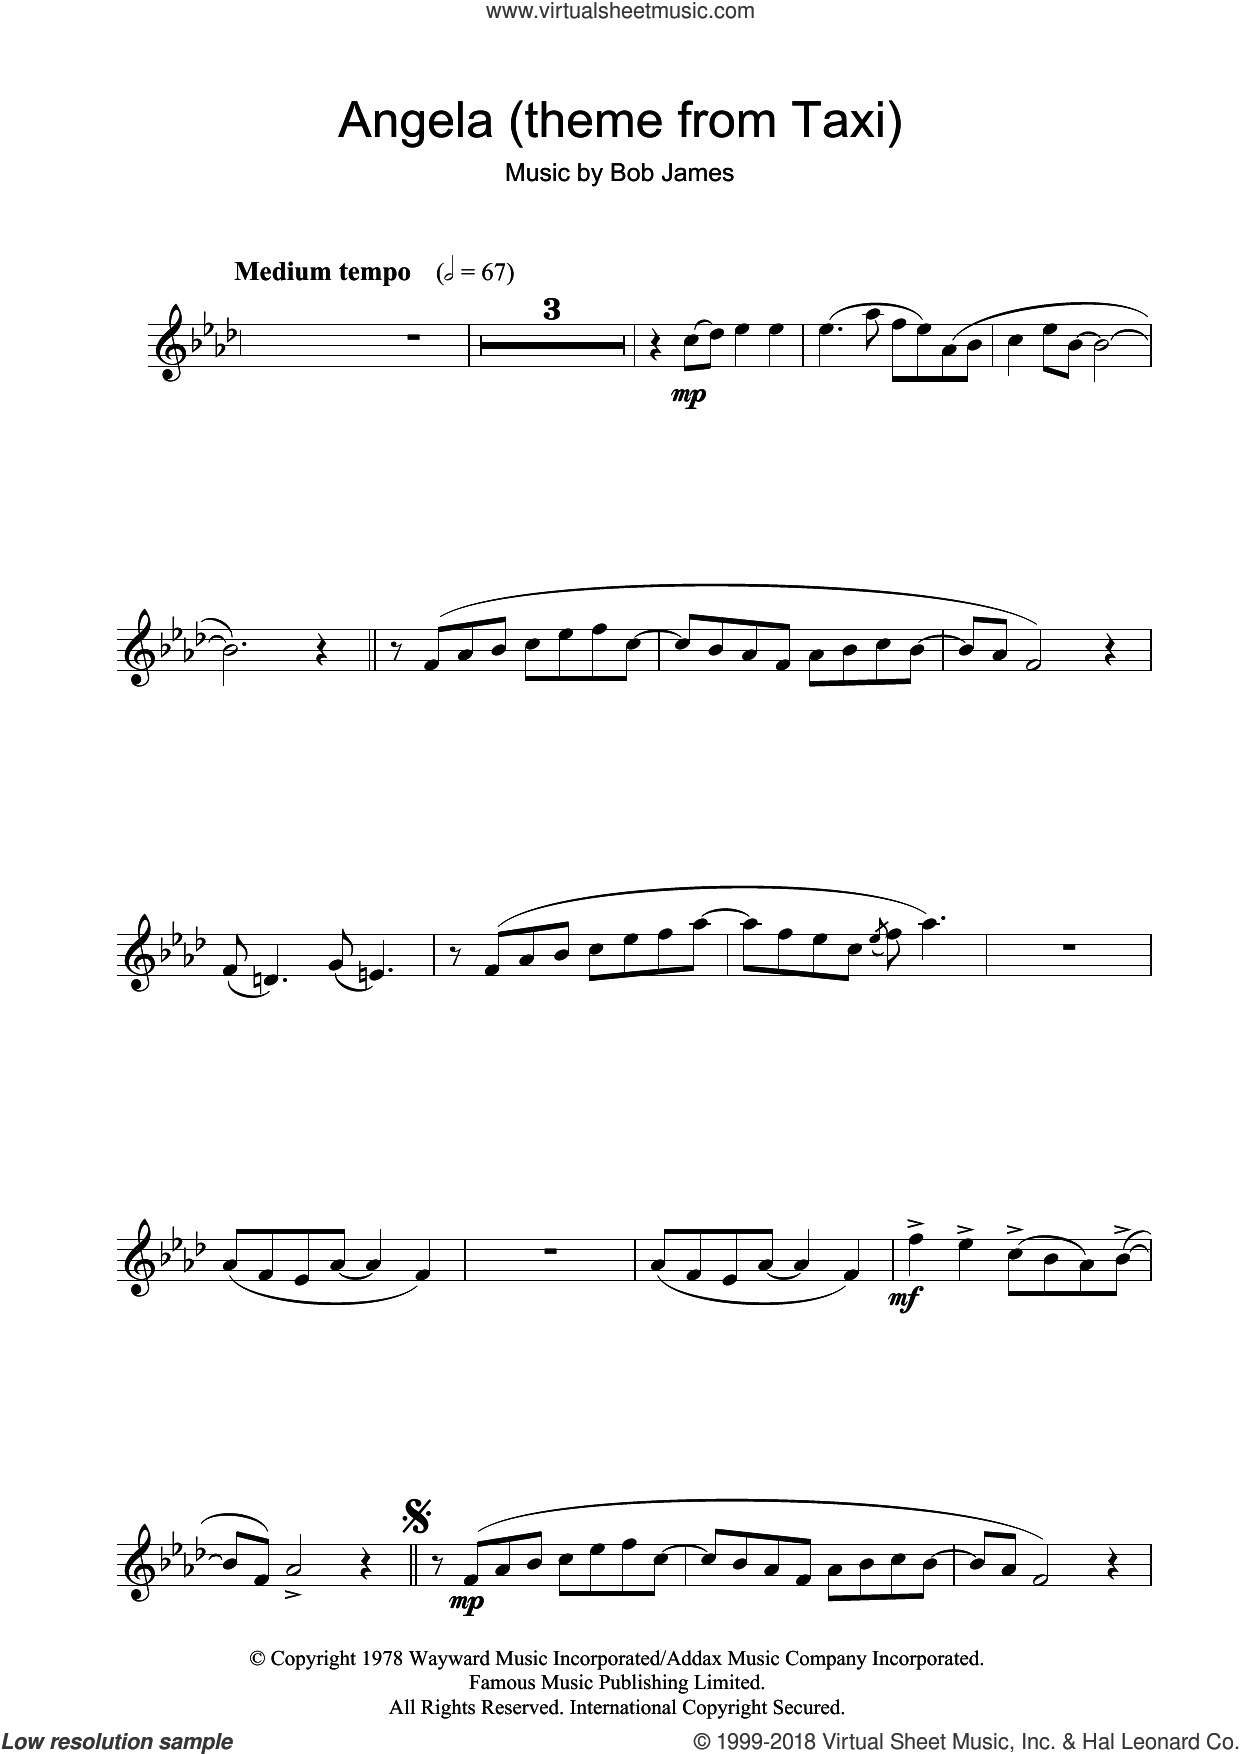 Angela (theme from Taxi) sheet music for flute solo by Bob James, intermediate